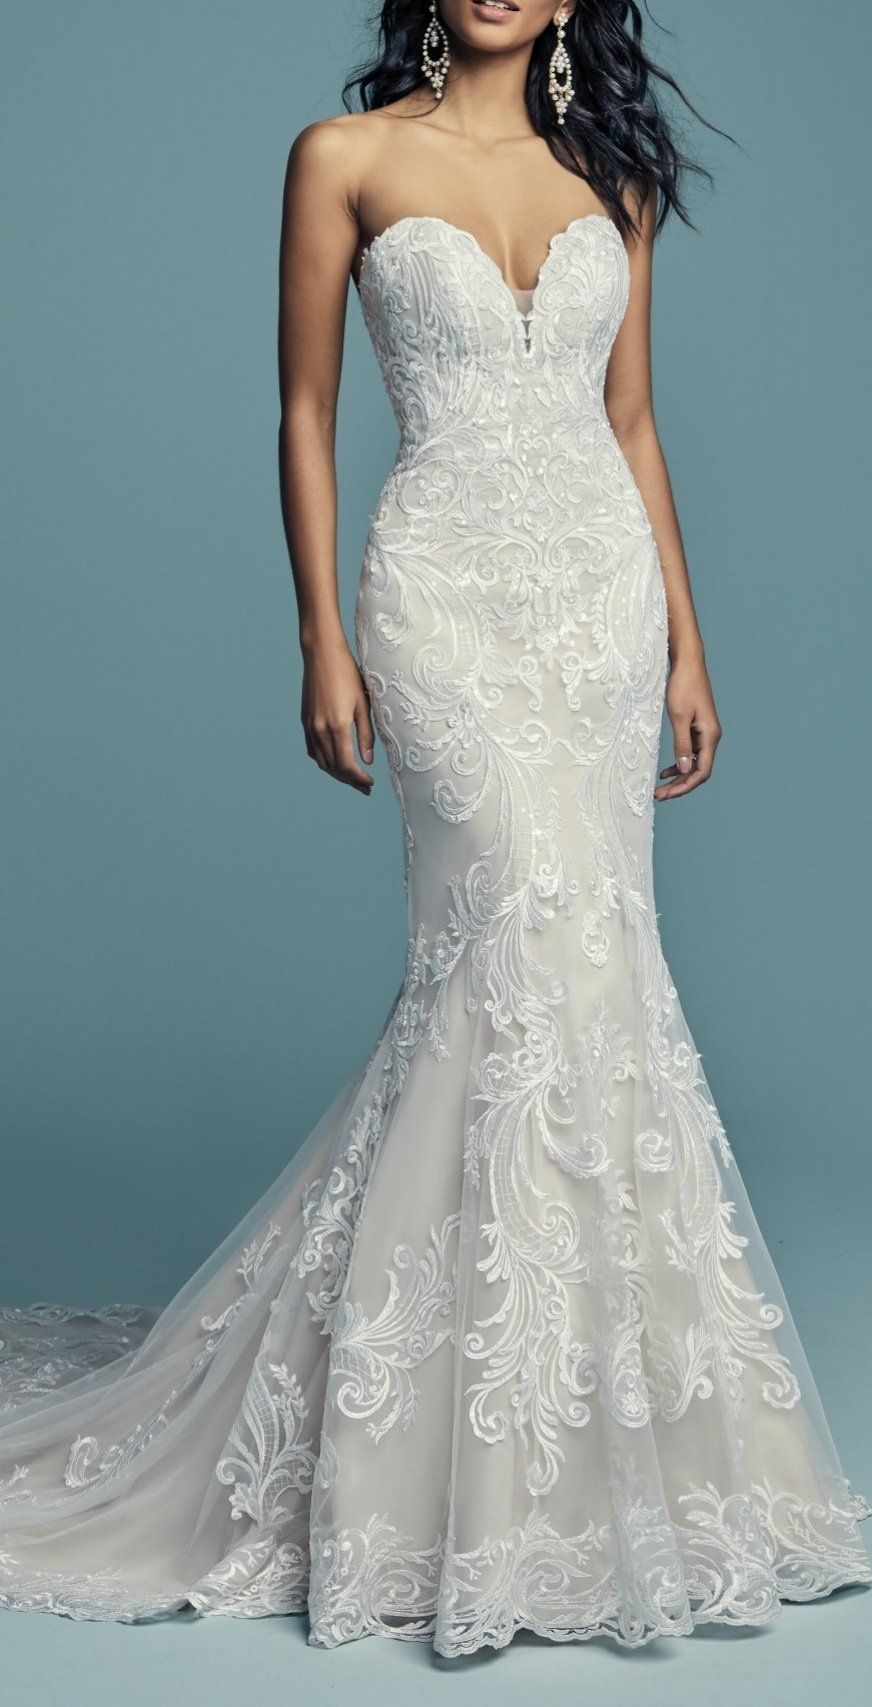 Maggie Sottero Wedding Dresses | Maggie sottero, Illusions and ...